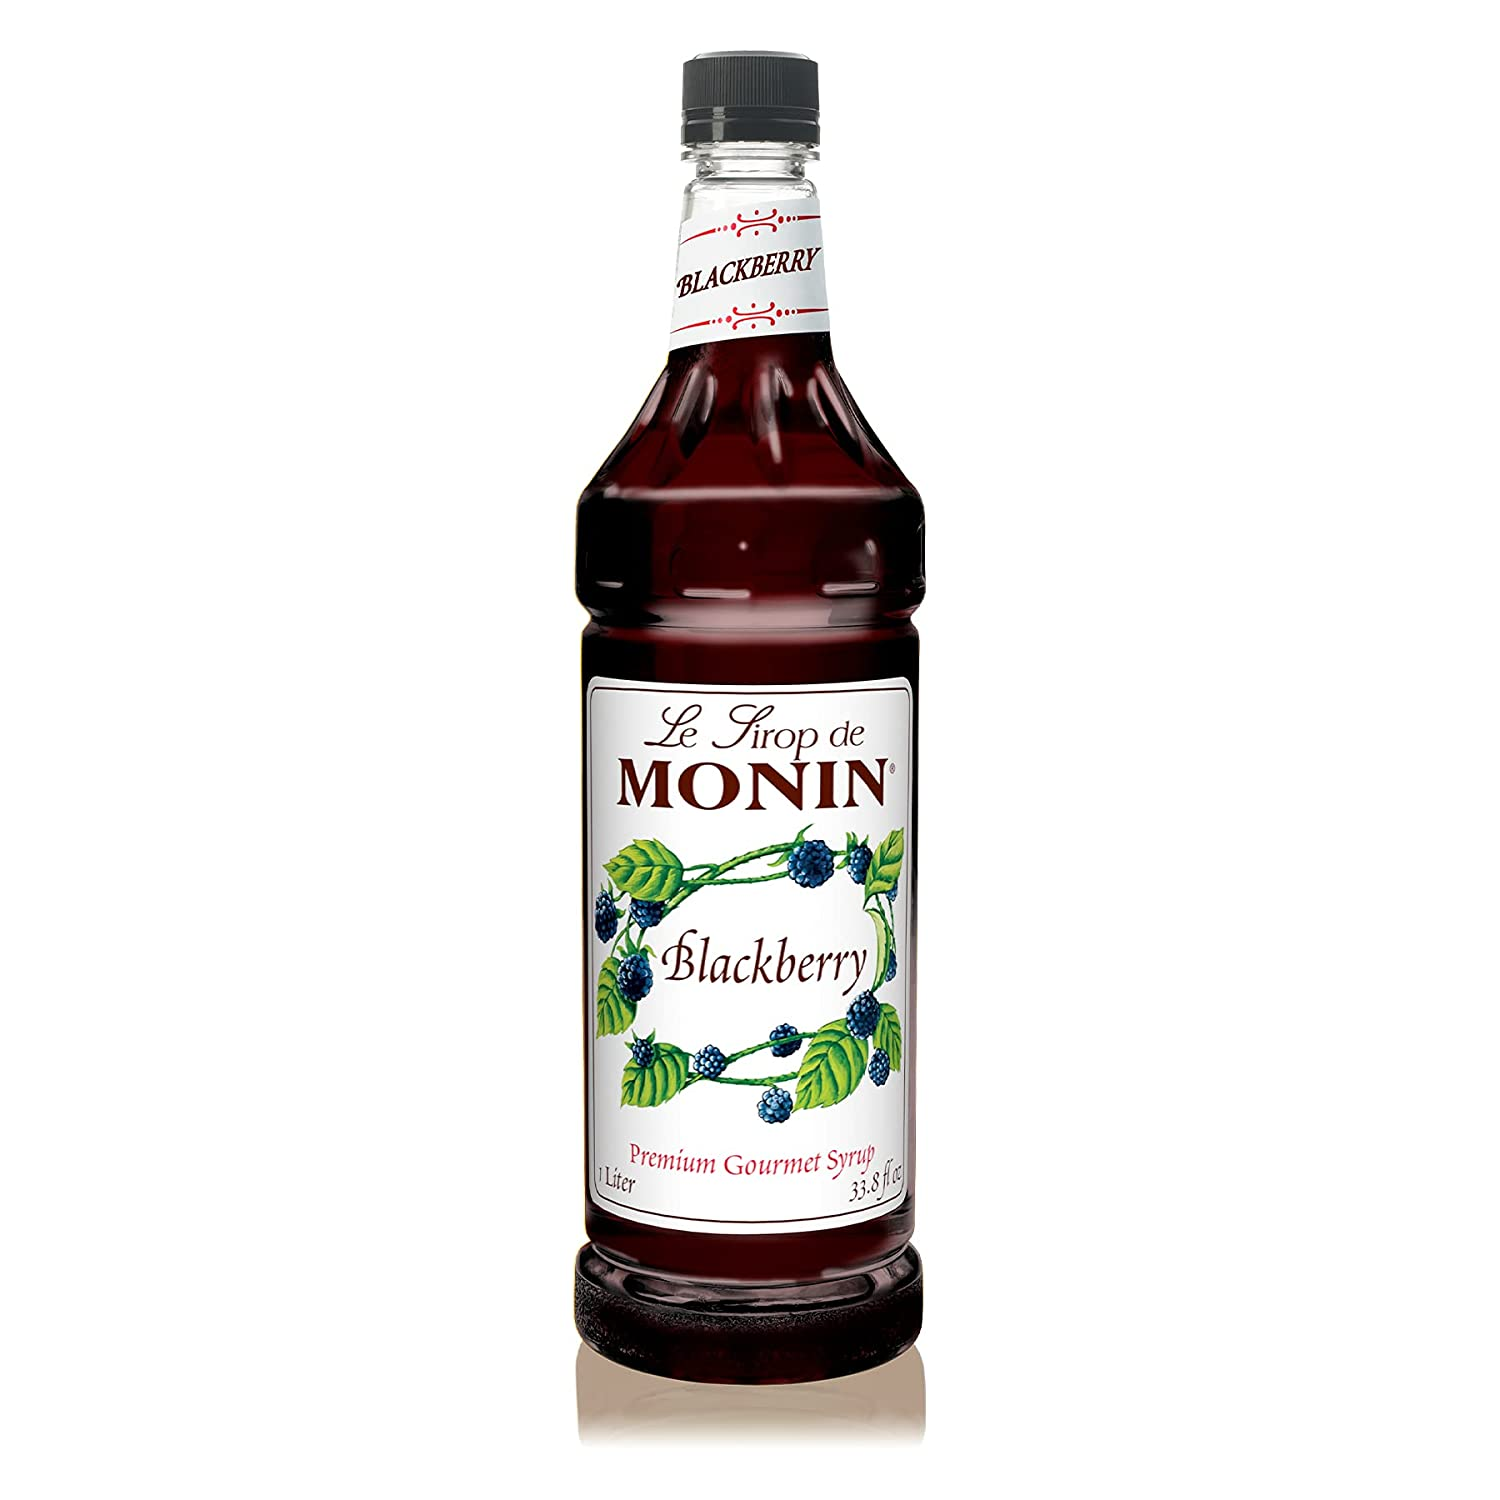 Monin - Blackberry Syrup OFFicial store Our shop OFFers the best service Cockta Berry Delicious Flavored